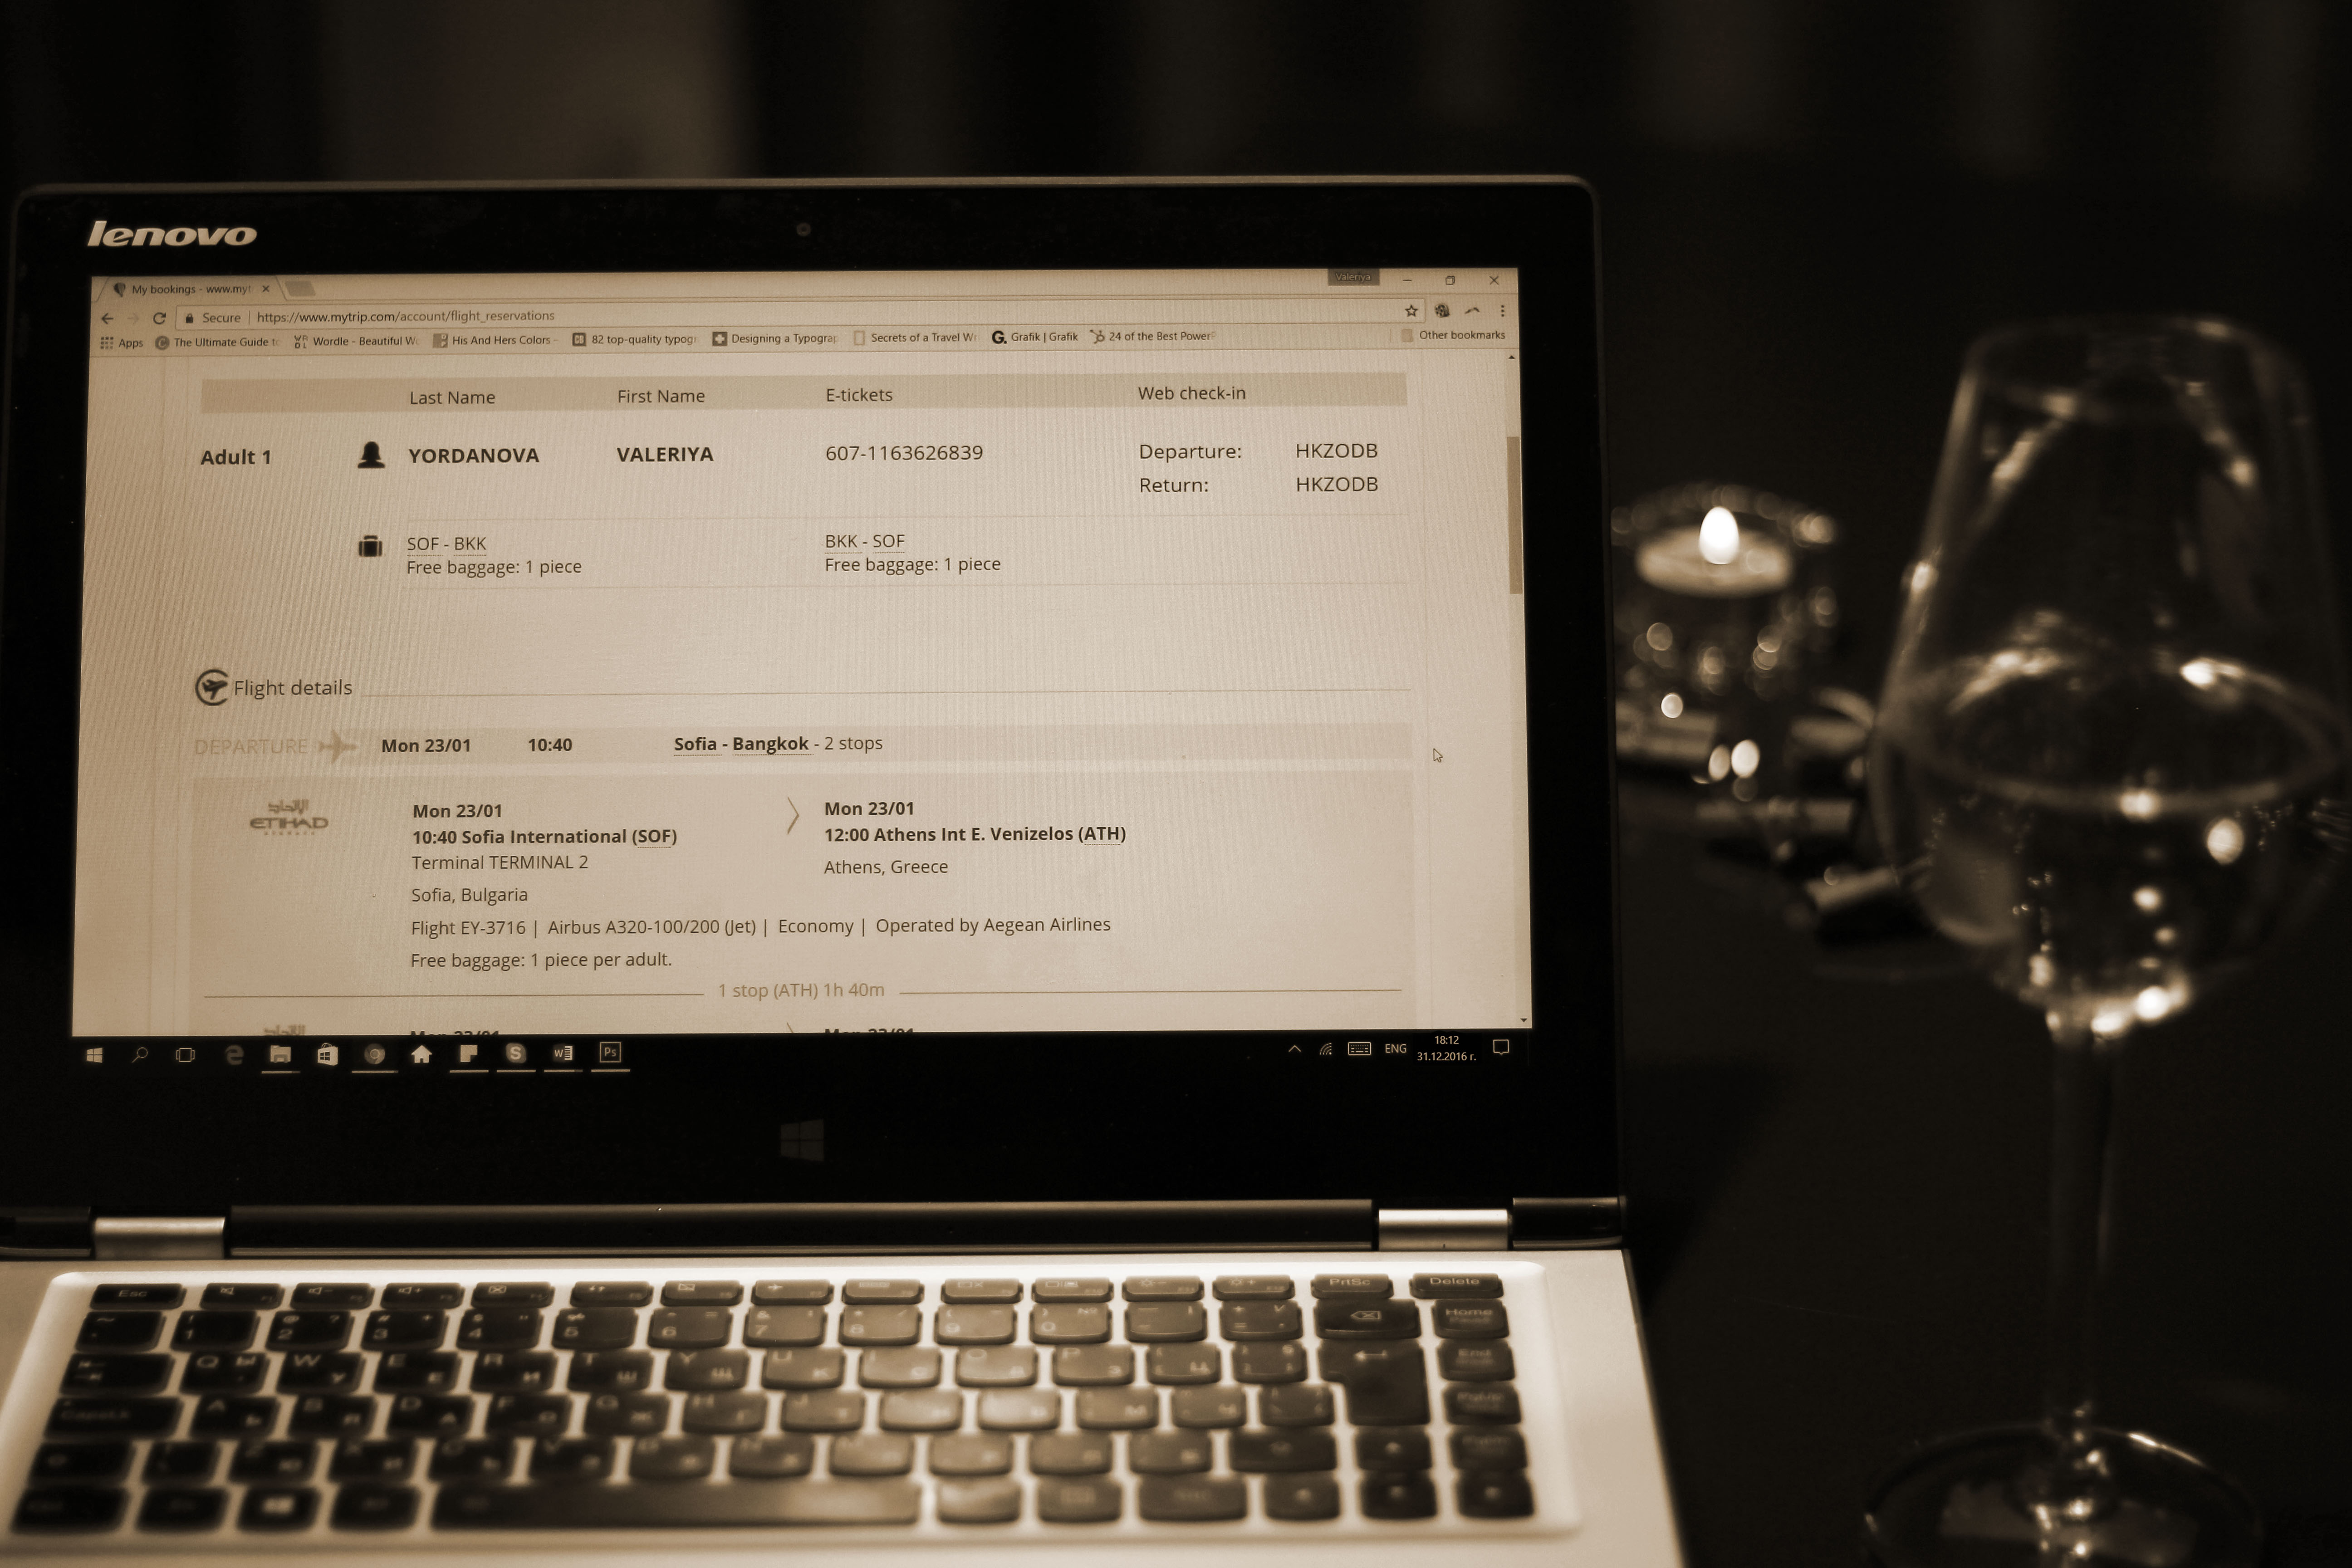 Online solo flight ticket and a glass of wine